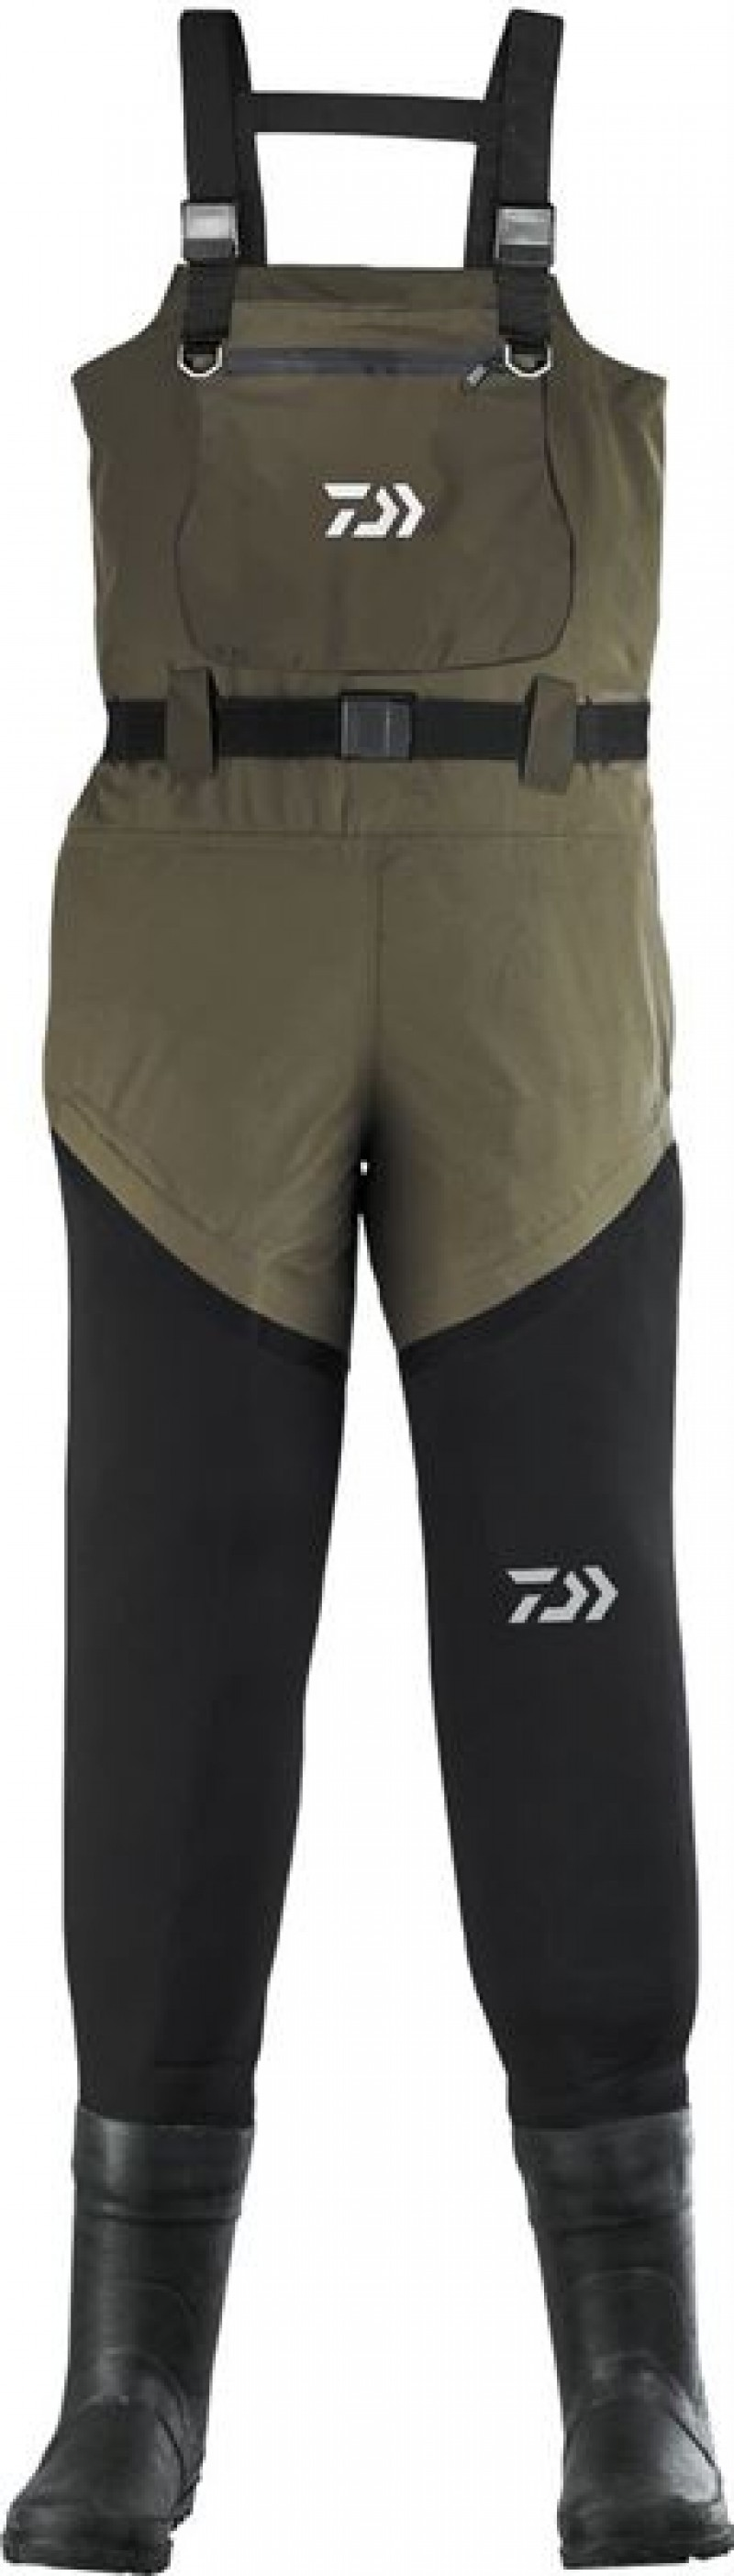 09d3005e993 Daiwa Hybrid Bootfoot Chest Wader – Glasgow Angling Centre